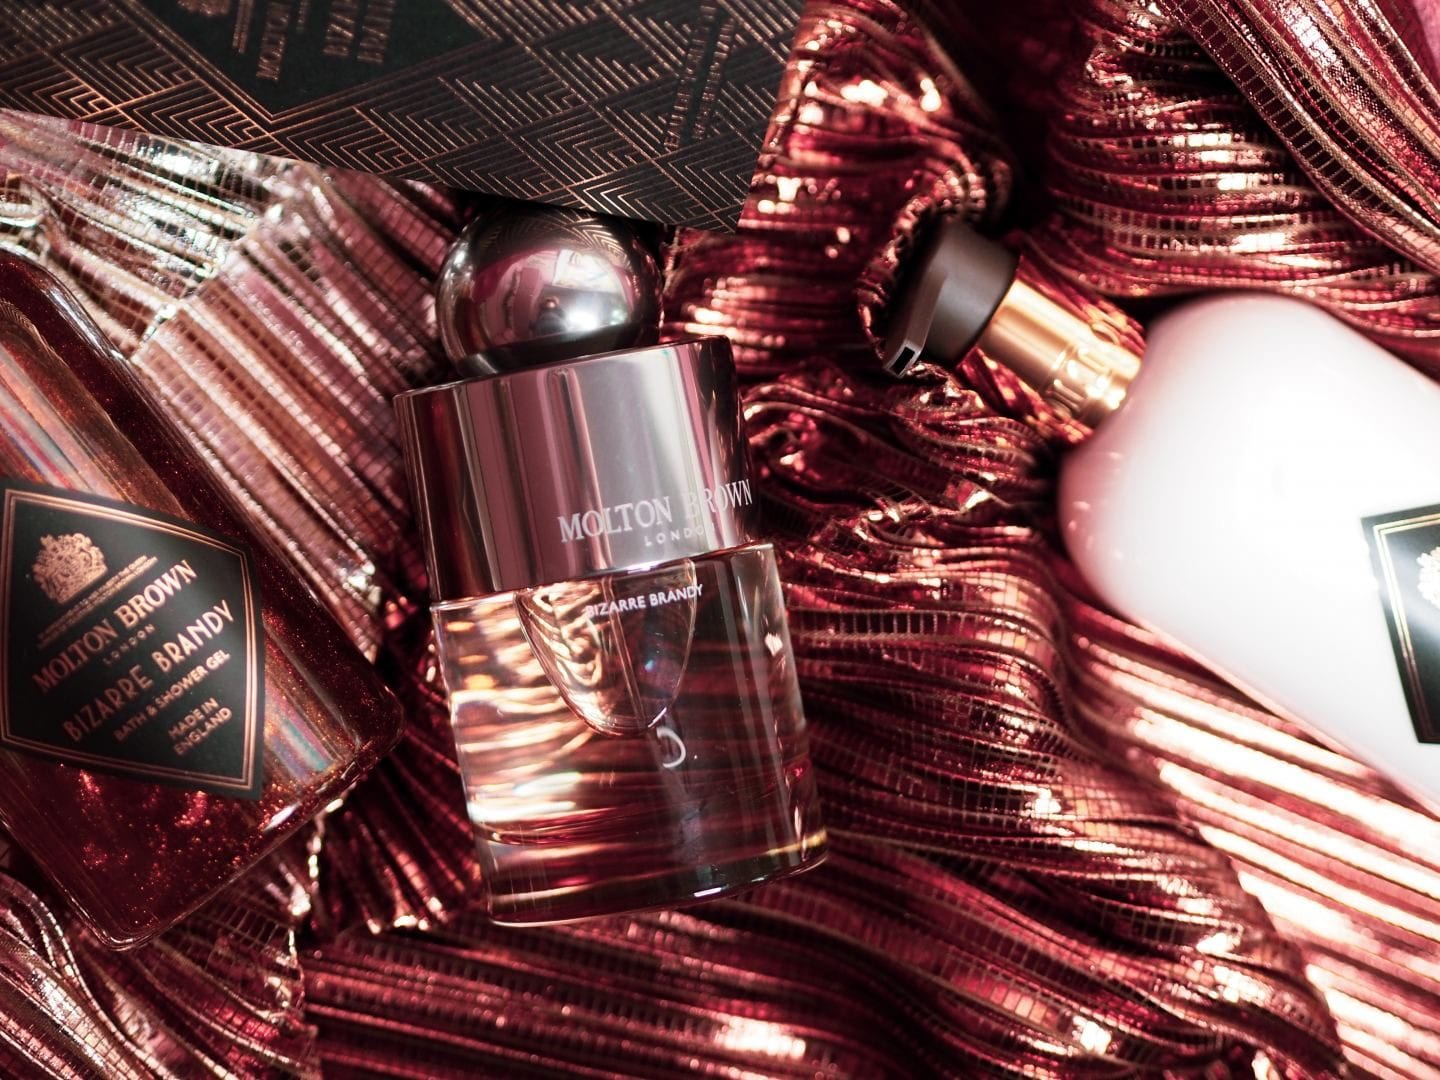 Molton Brown 'Bizarre Brandy' Limited Edition Christmas Collection perfume